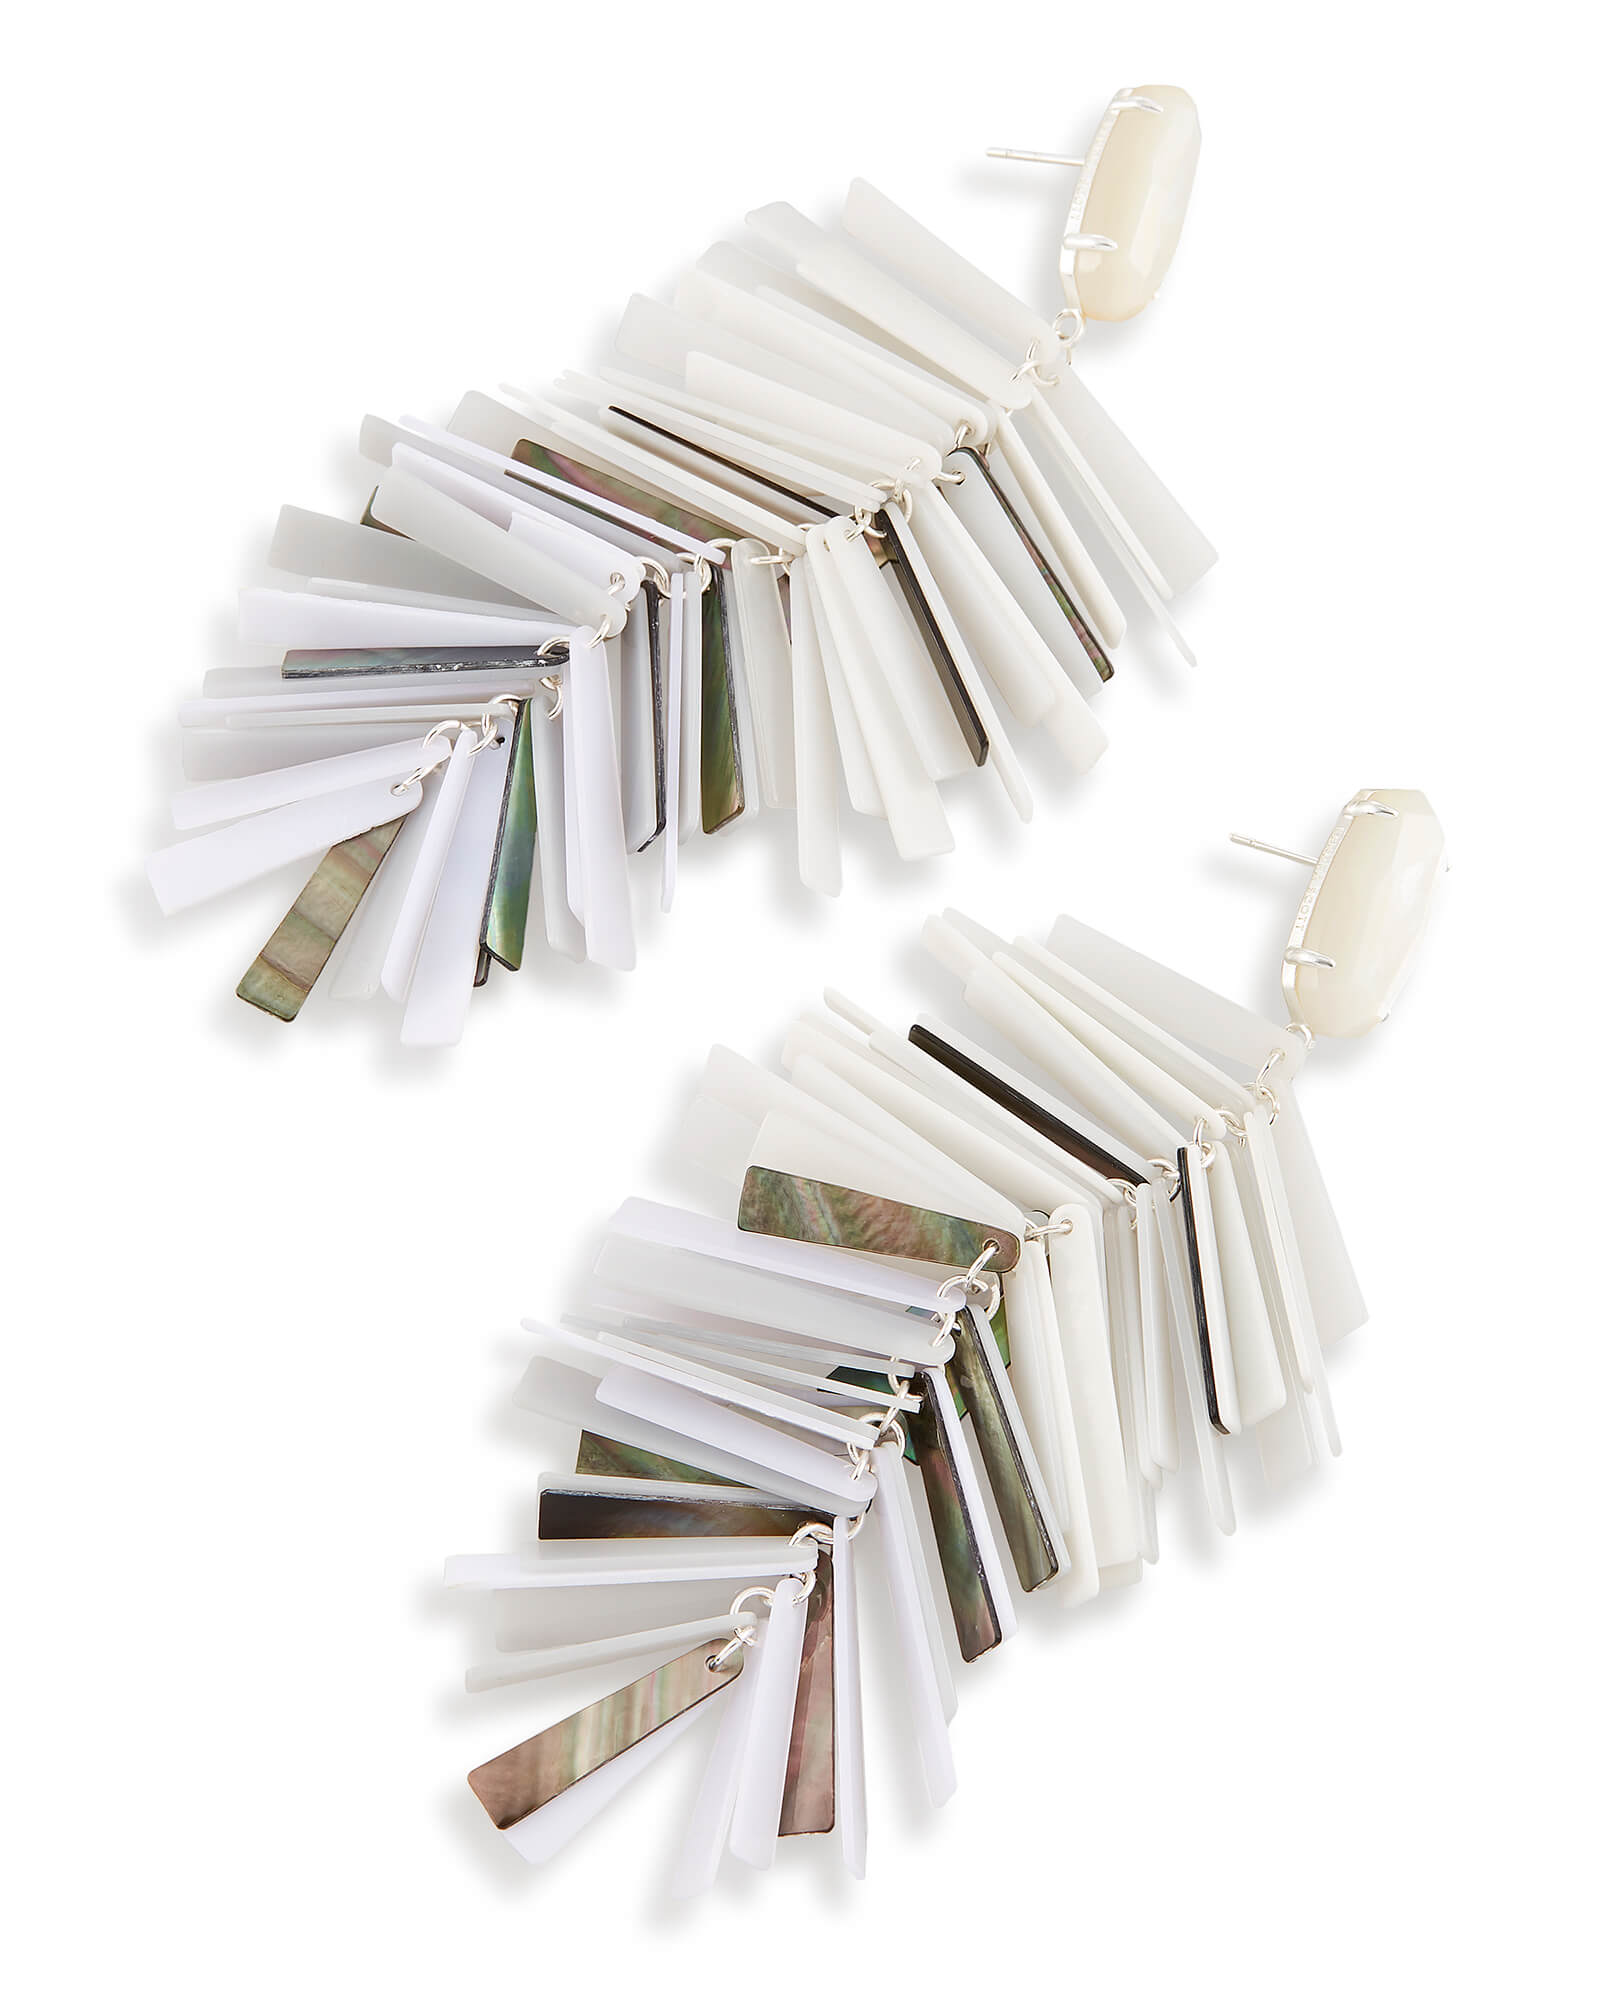 Justyne Silver Statement Earrings in Neutral Mix Mother of Pearl